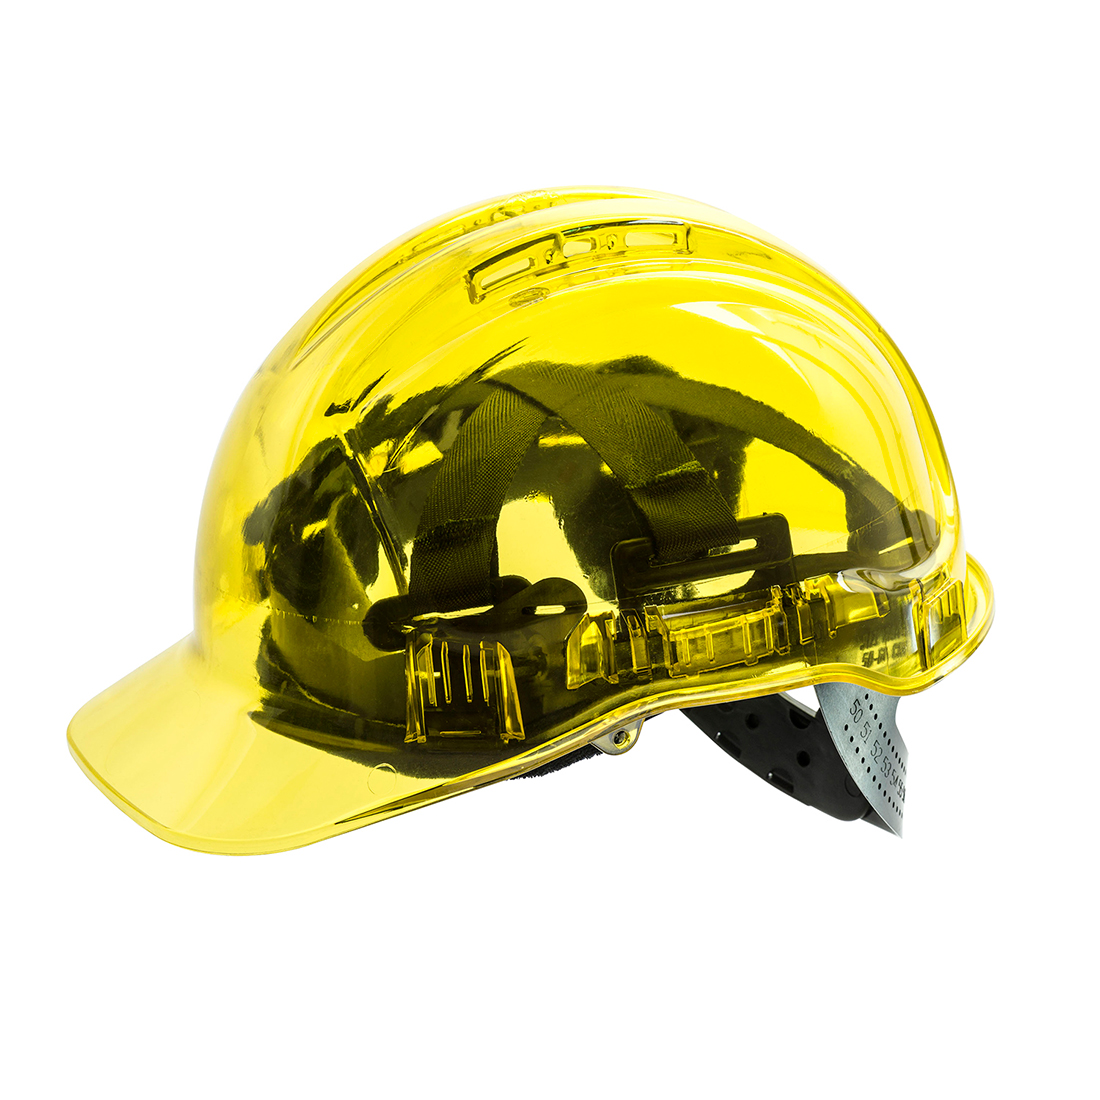 Portwest Peak View Hard Hat Vented - PV50